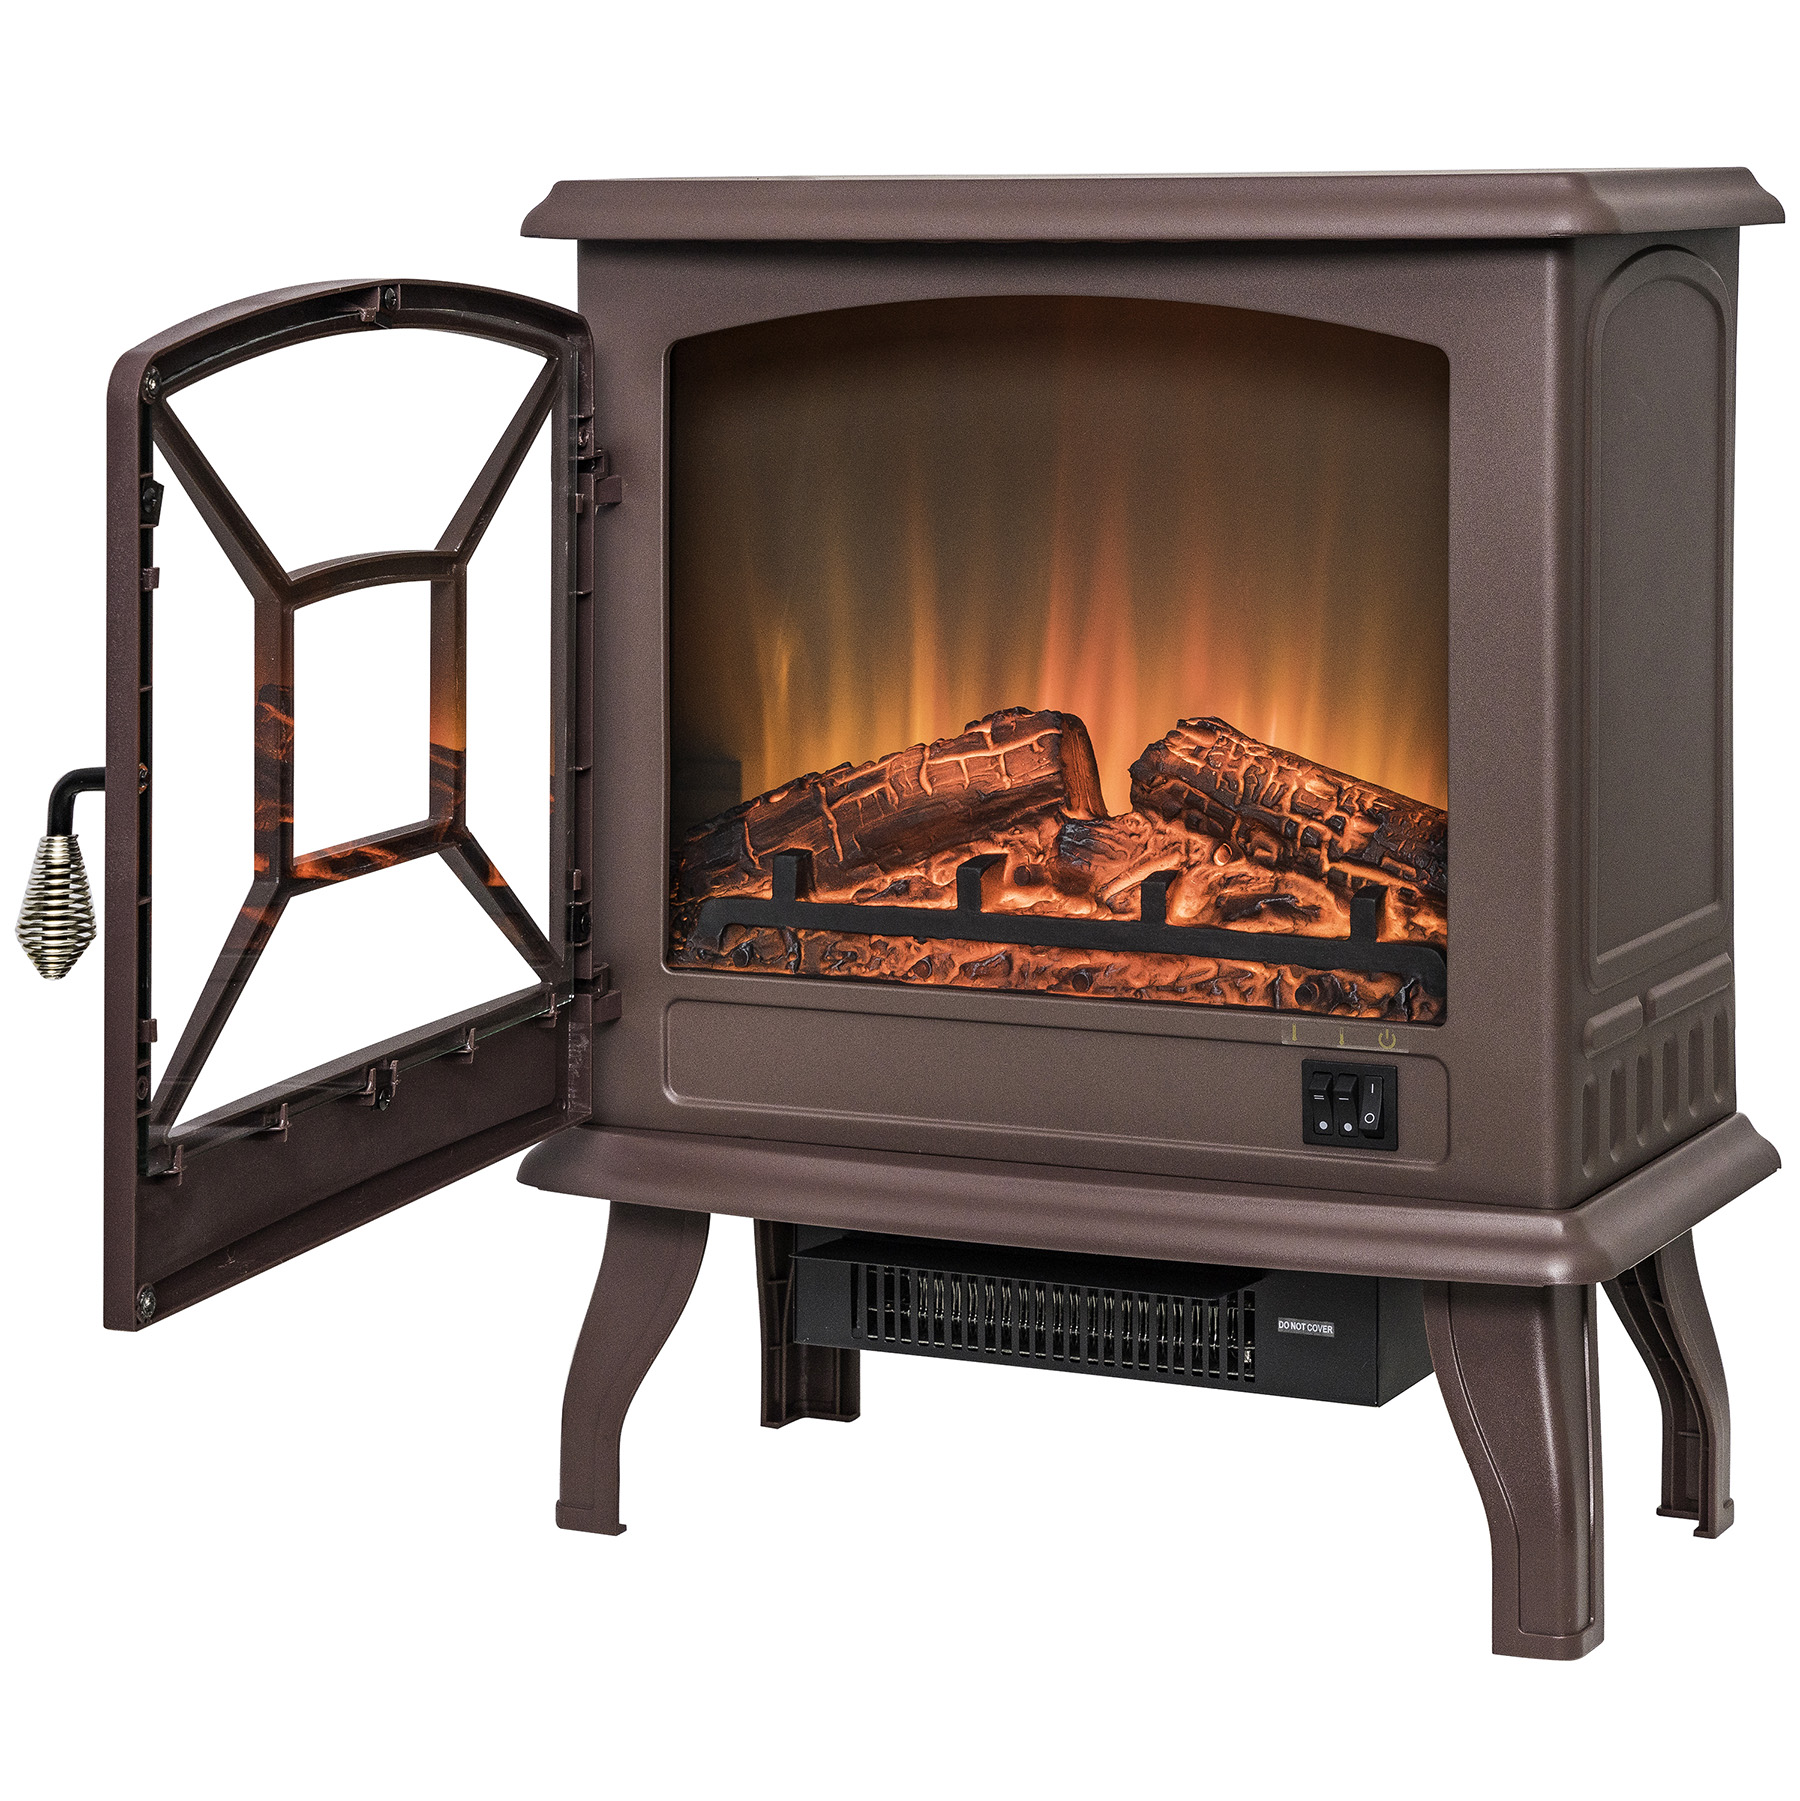 Akdy Fp0082 20 Brown Freestanding Portable Electric Fireplace